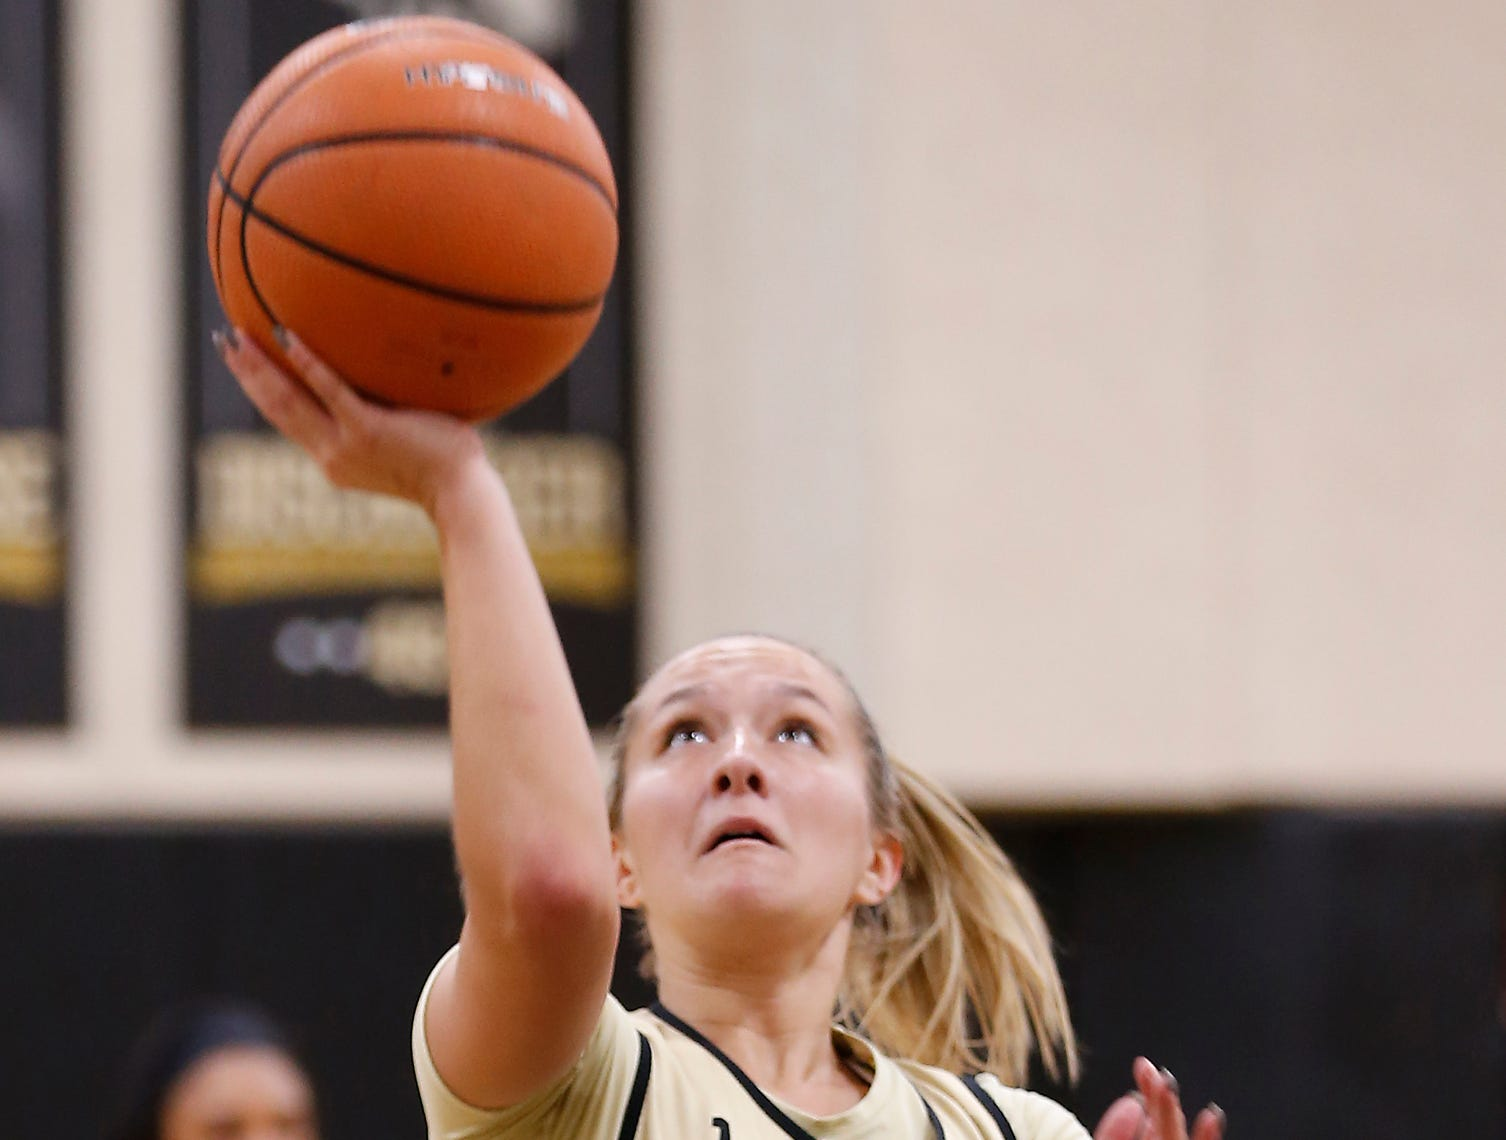 Karissa McLaughlin with a layup during practice for Purdue women's basketball Wednesdy, September 26, 2018, at Cardinal Court in Mackey Arena.